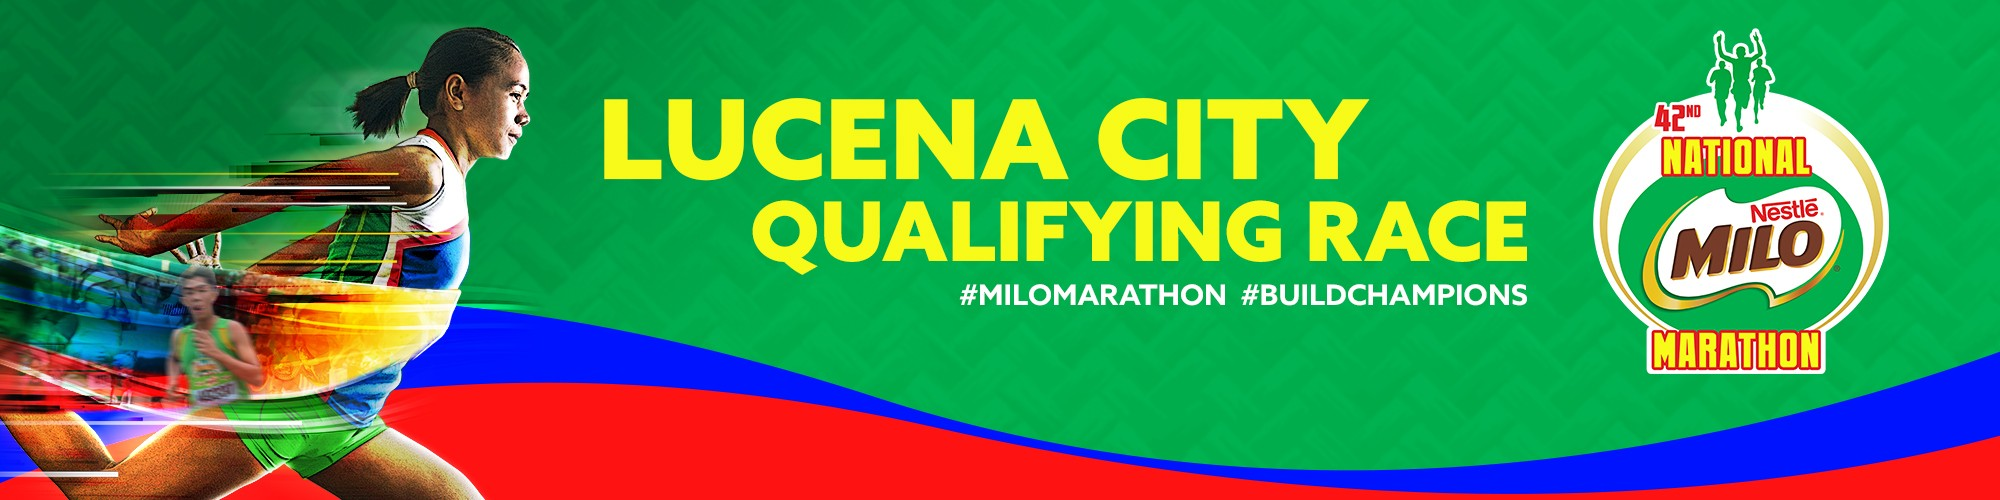 2019 National MILO Marathon Lucena City